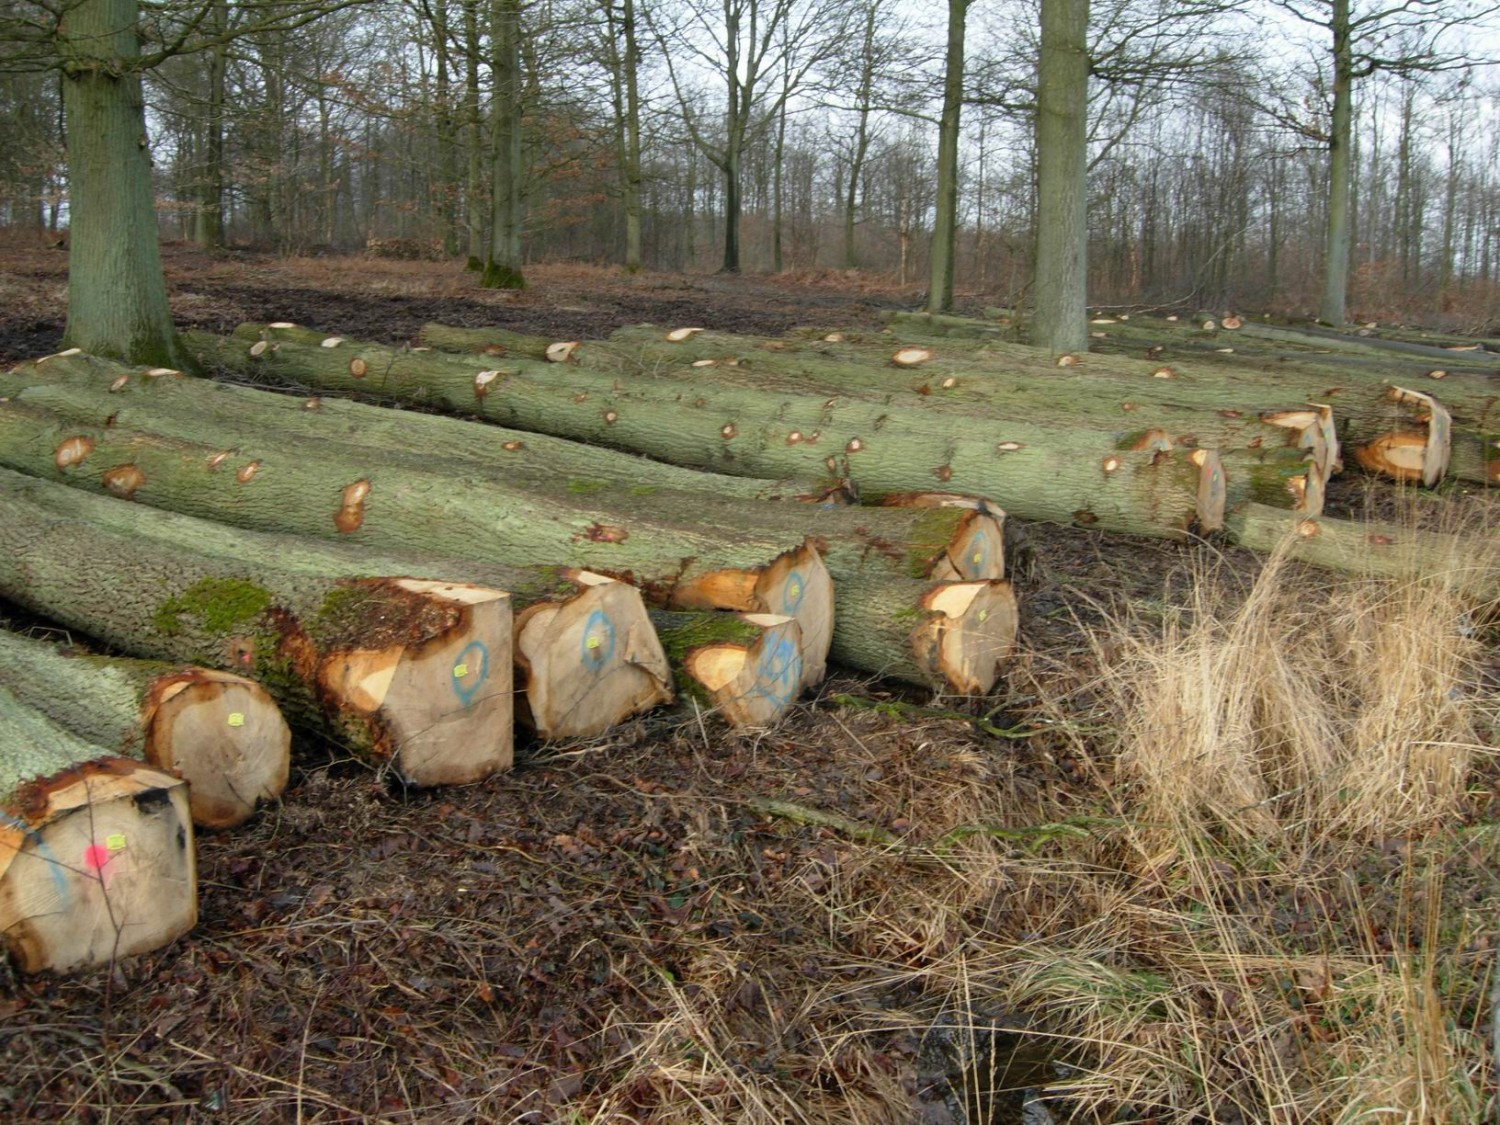 Stamhout/Rondhout | Blessing Timbers, Huizen, t Gooi